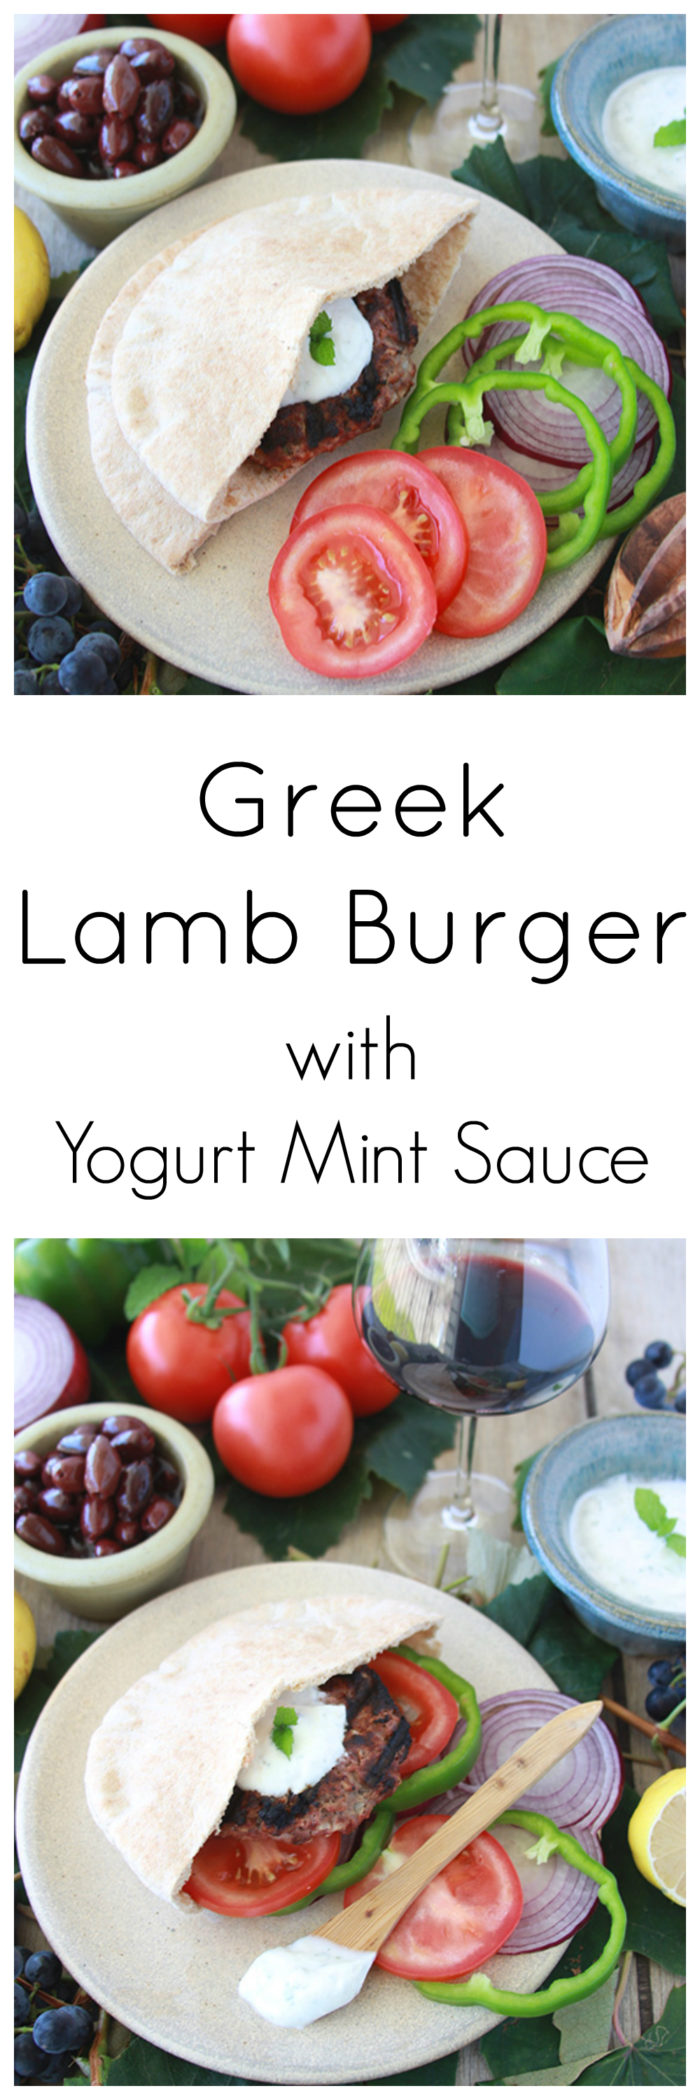 Greek Lamb Burger with Yogurt Mint Sauce on www.cookingwithruthie.com tastes a lot like a gyro but even better grilled into a burger! #foodbridges